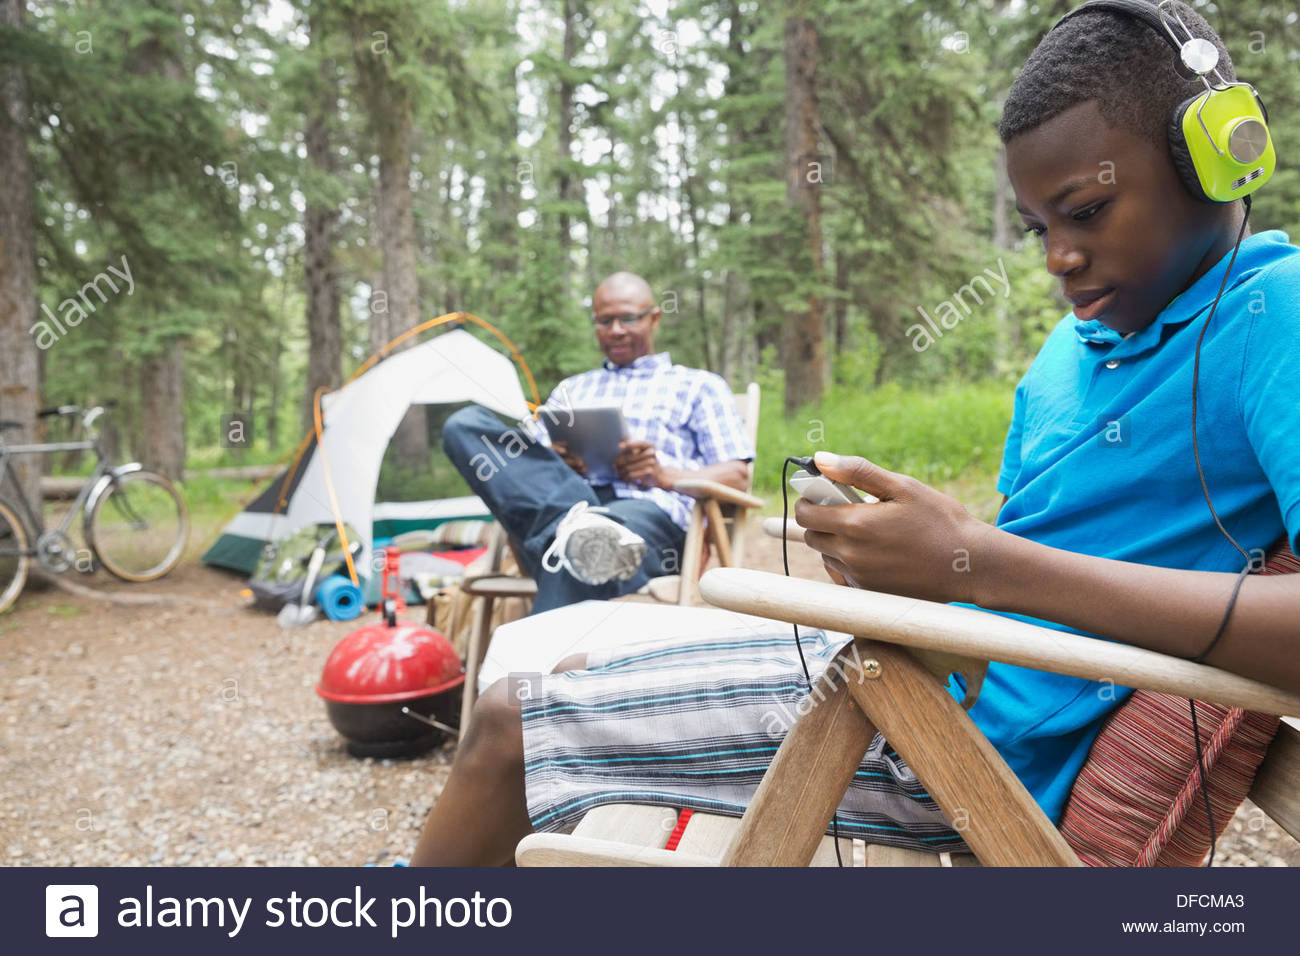 Father and son using technologies at campsite - Stock Image